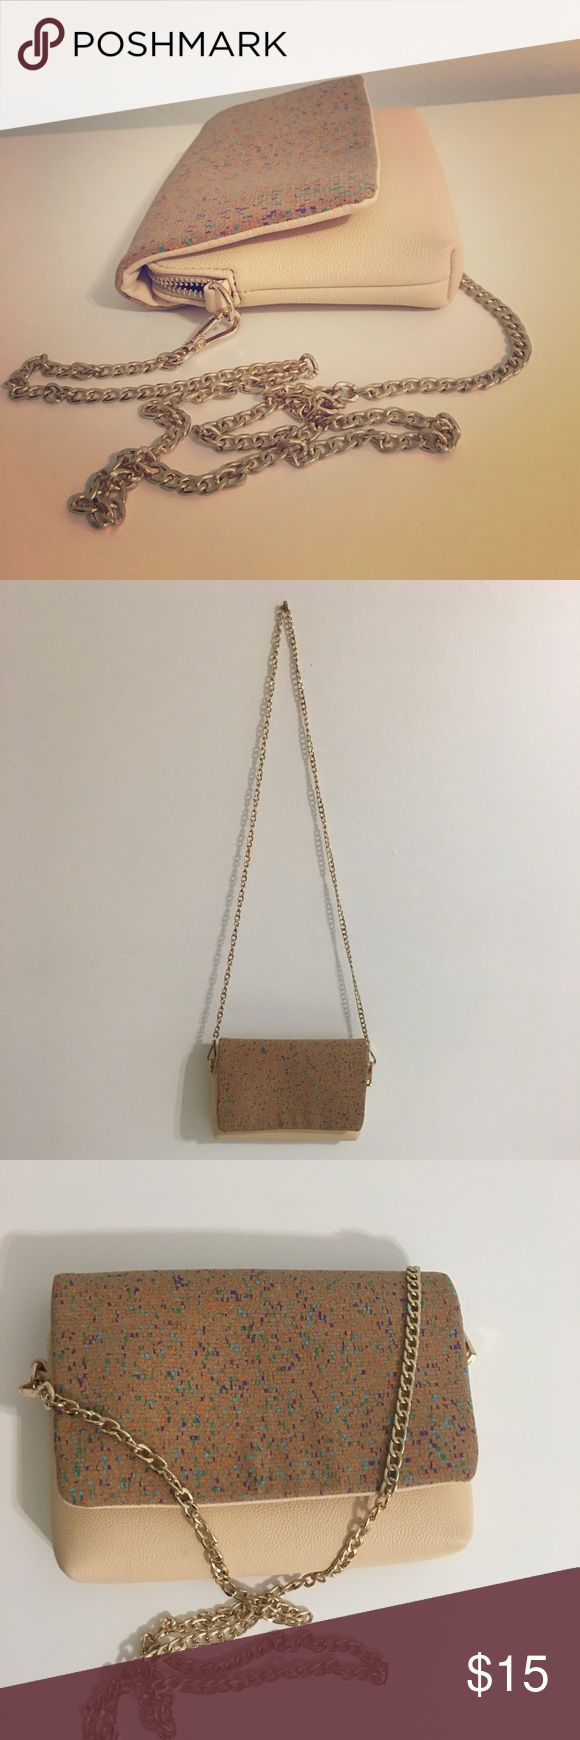 Beige crossover bag with gold chain This bag is used in a very good condition, barely used. It's beige with gold chain. Bags Crossbody Bags